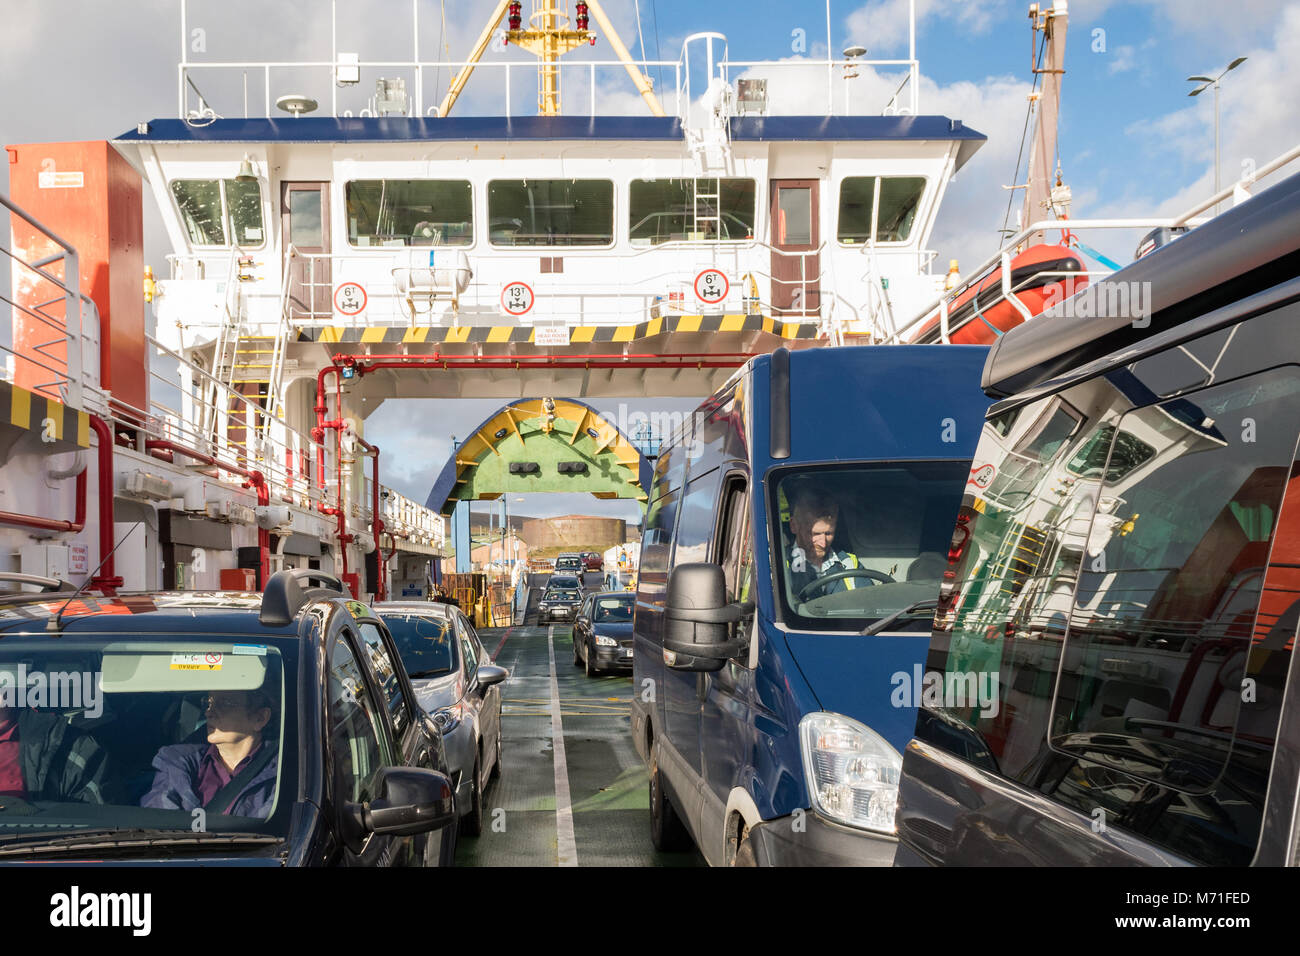 vehicles embarking on Orkney Ferries ferry at Lyness Orkney Ferry Terminal, Hoy, Orkney Islands to travel to Houton - Stock Image